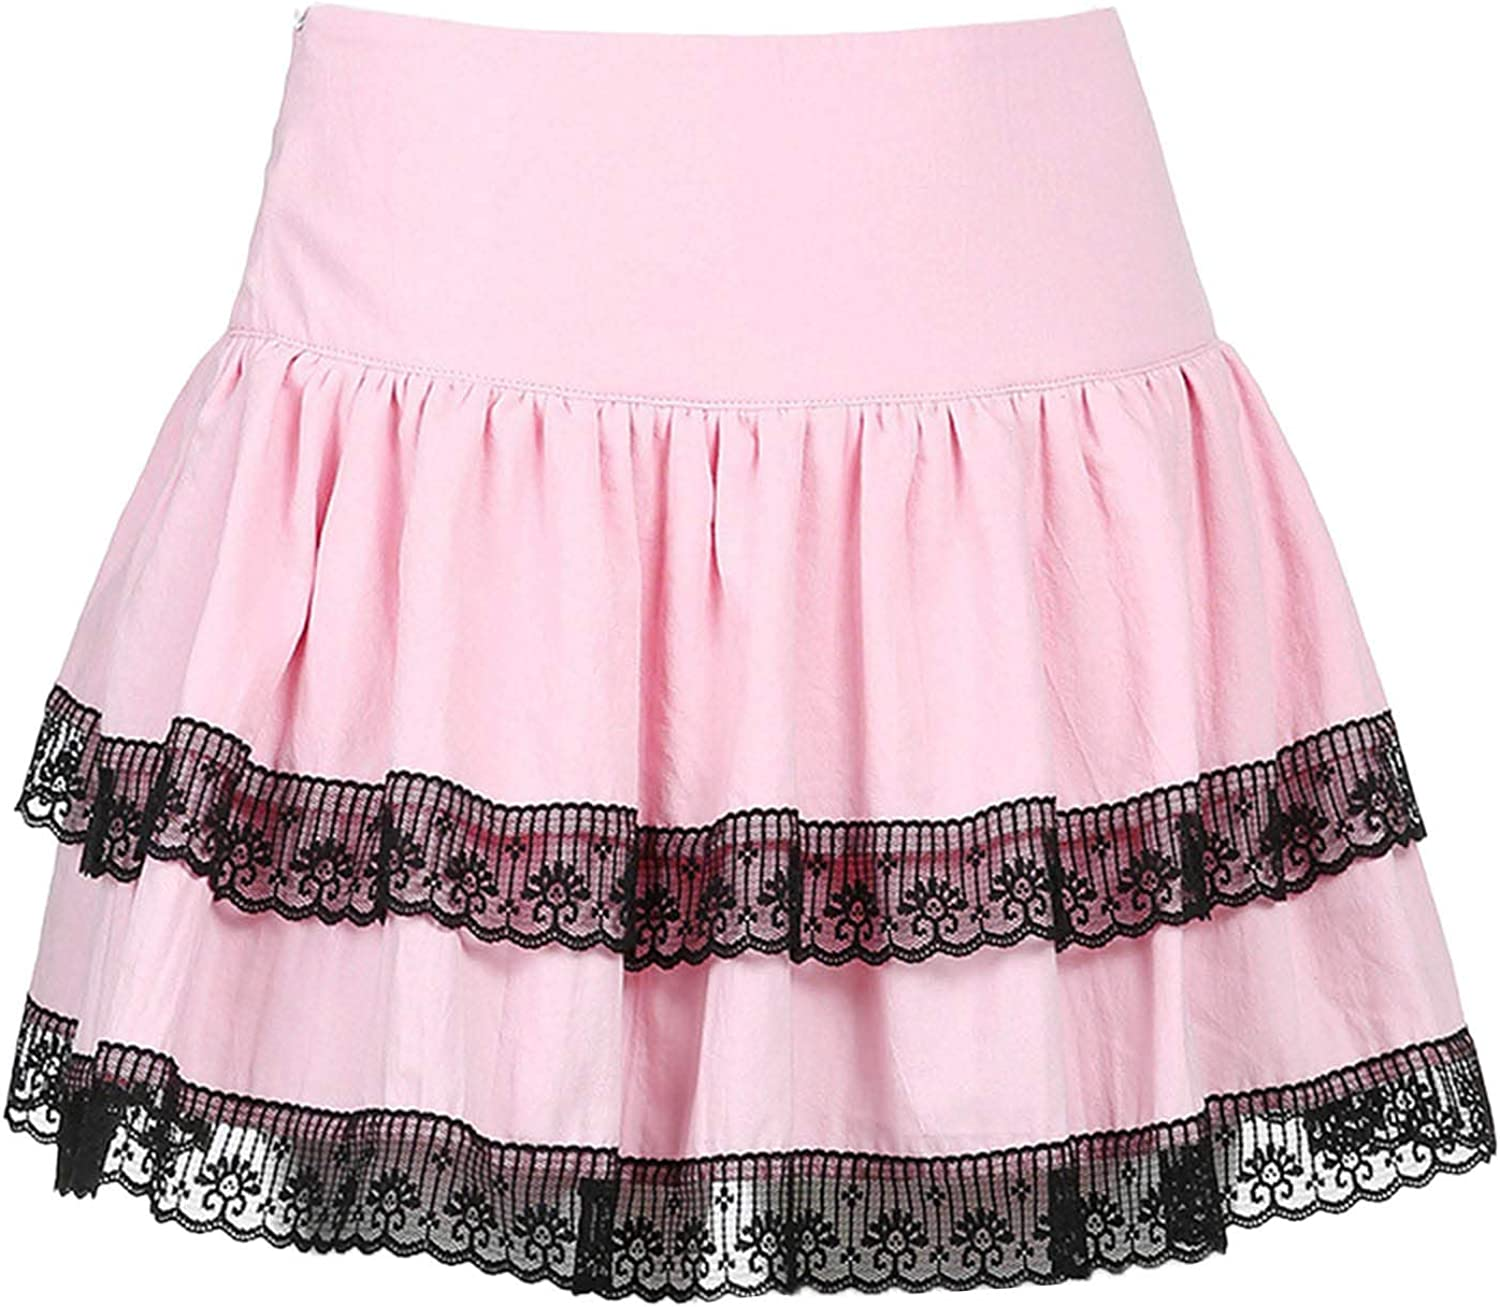 TSSOE Women's Flared Casual Double Layers Lace Trim A-Line Pleated Skirt Mini Skirts